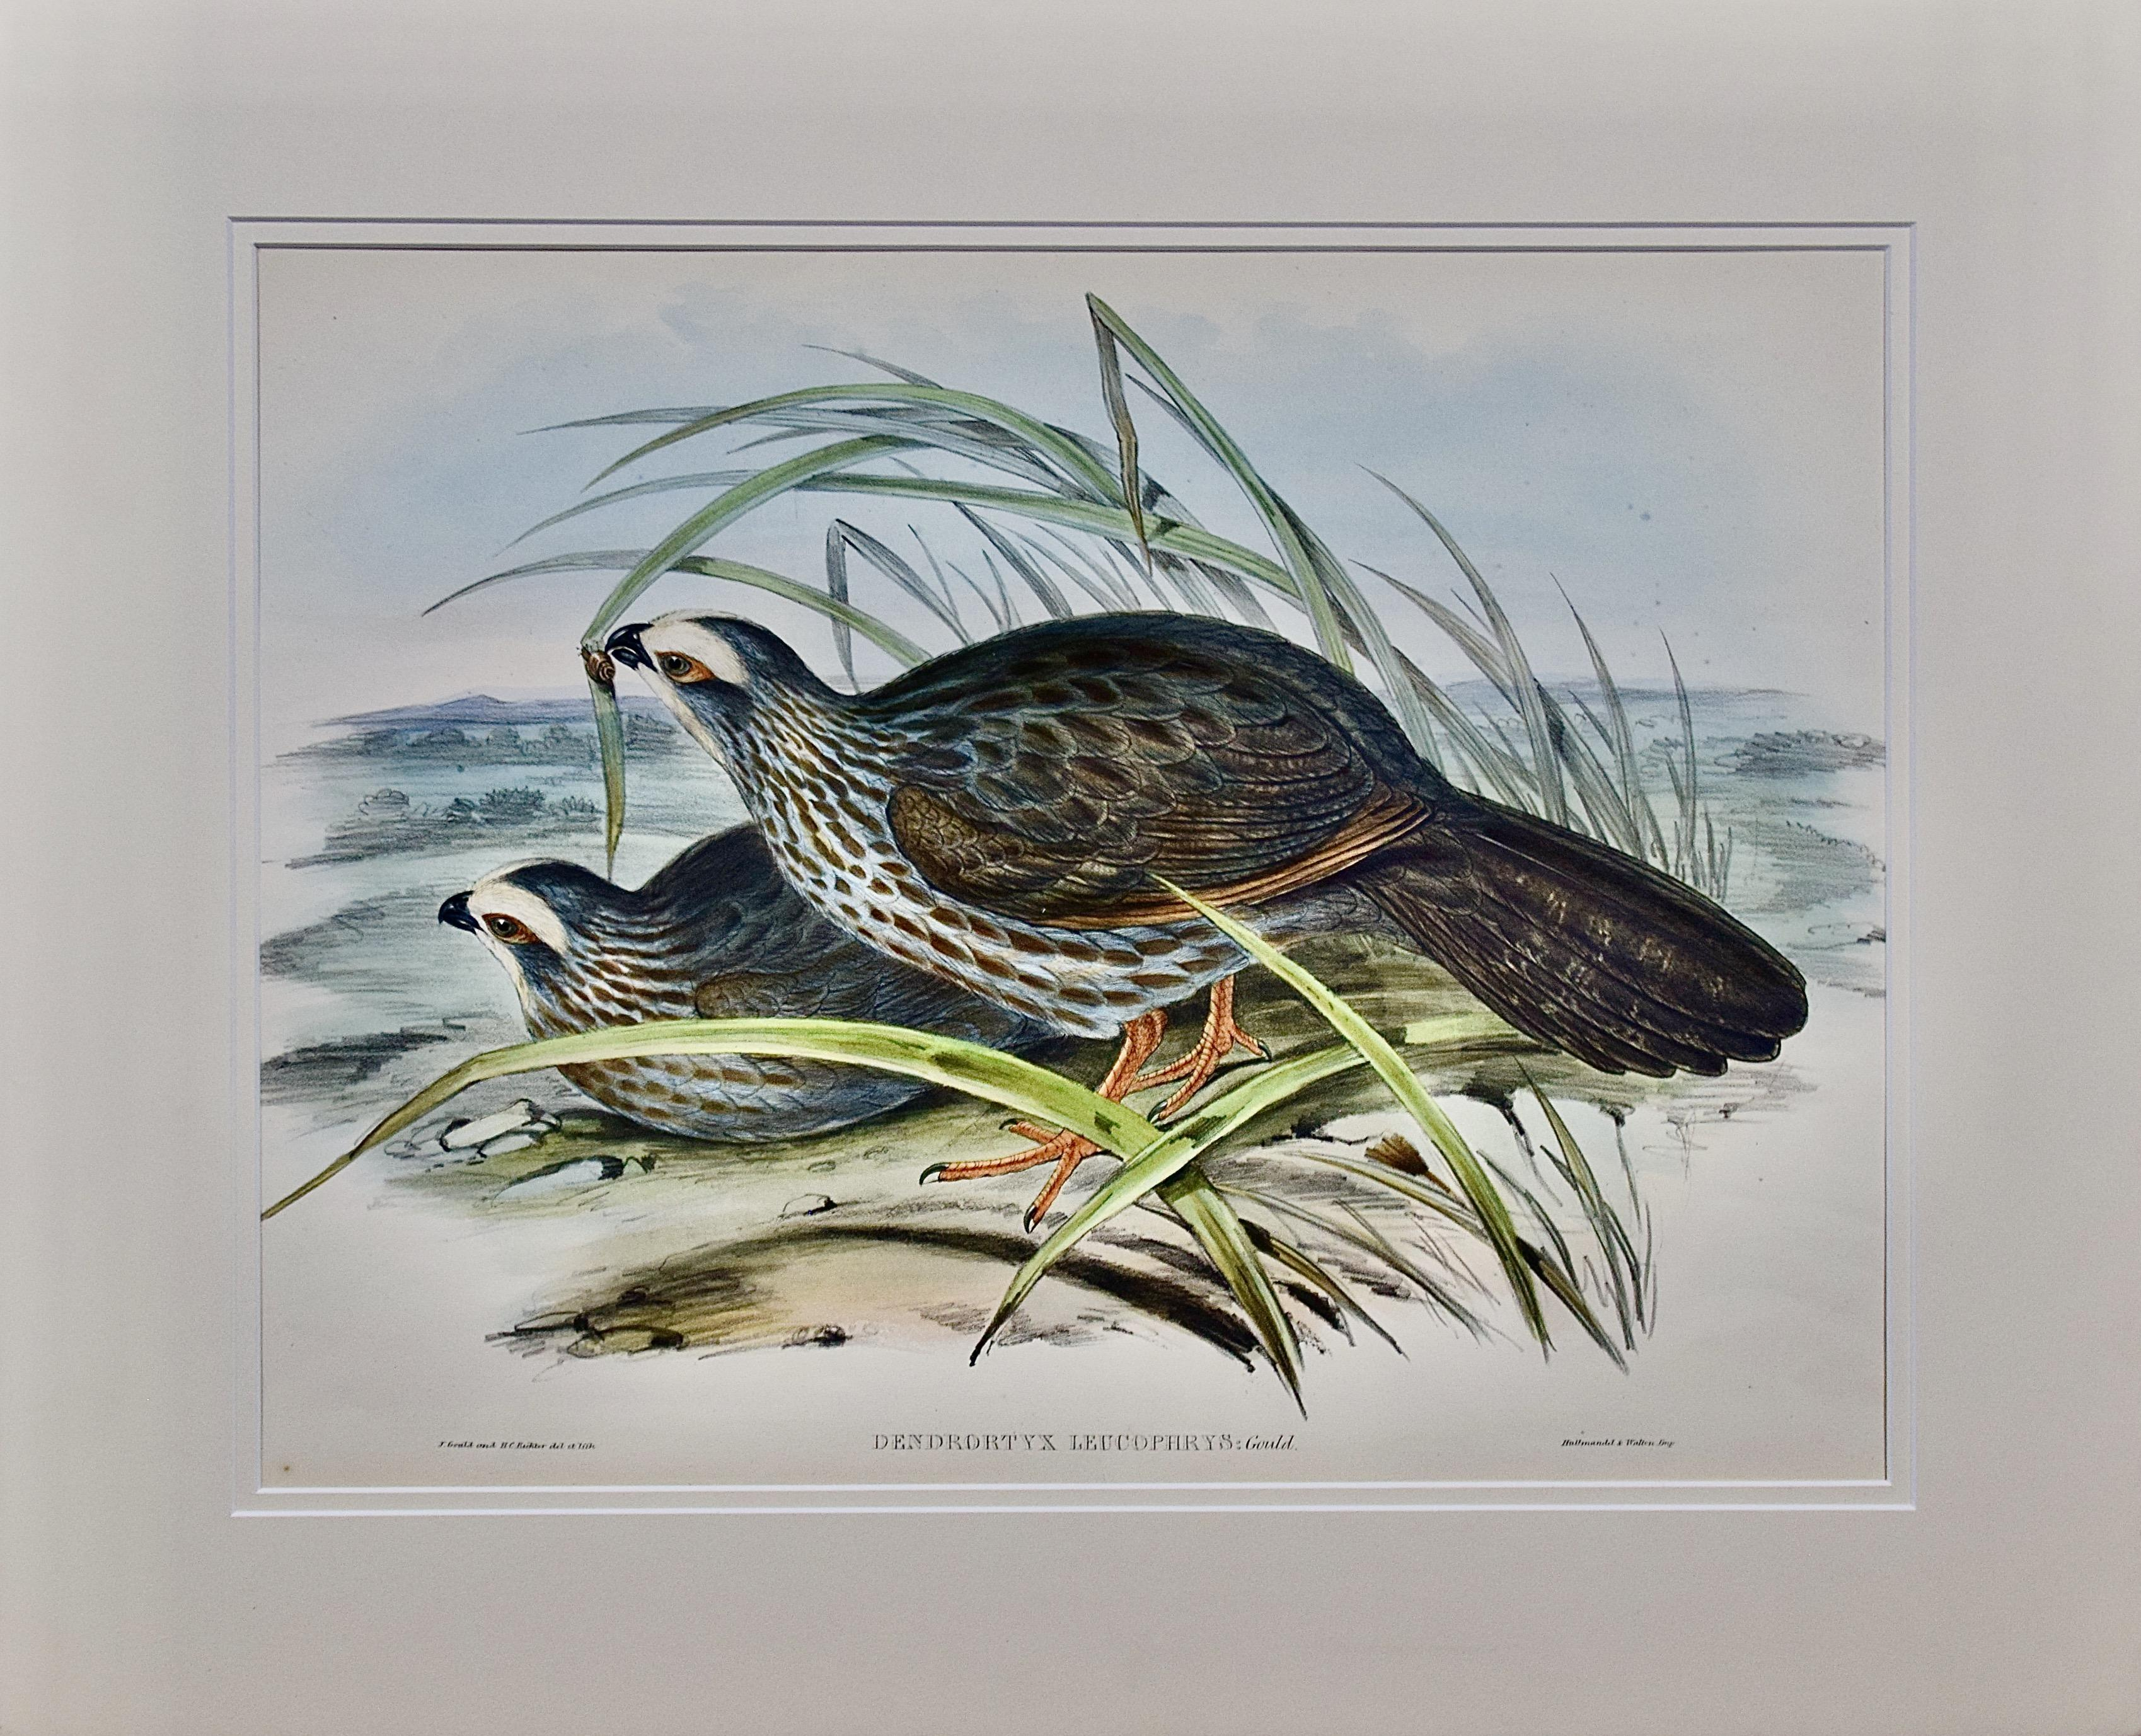 Gould Hand-colored Folio-sized Lithograph of White Eye-browed Partridges